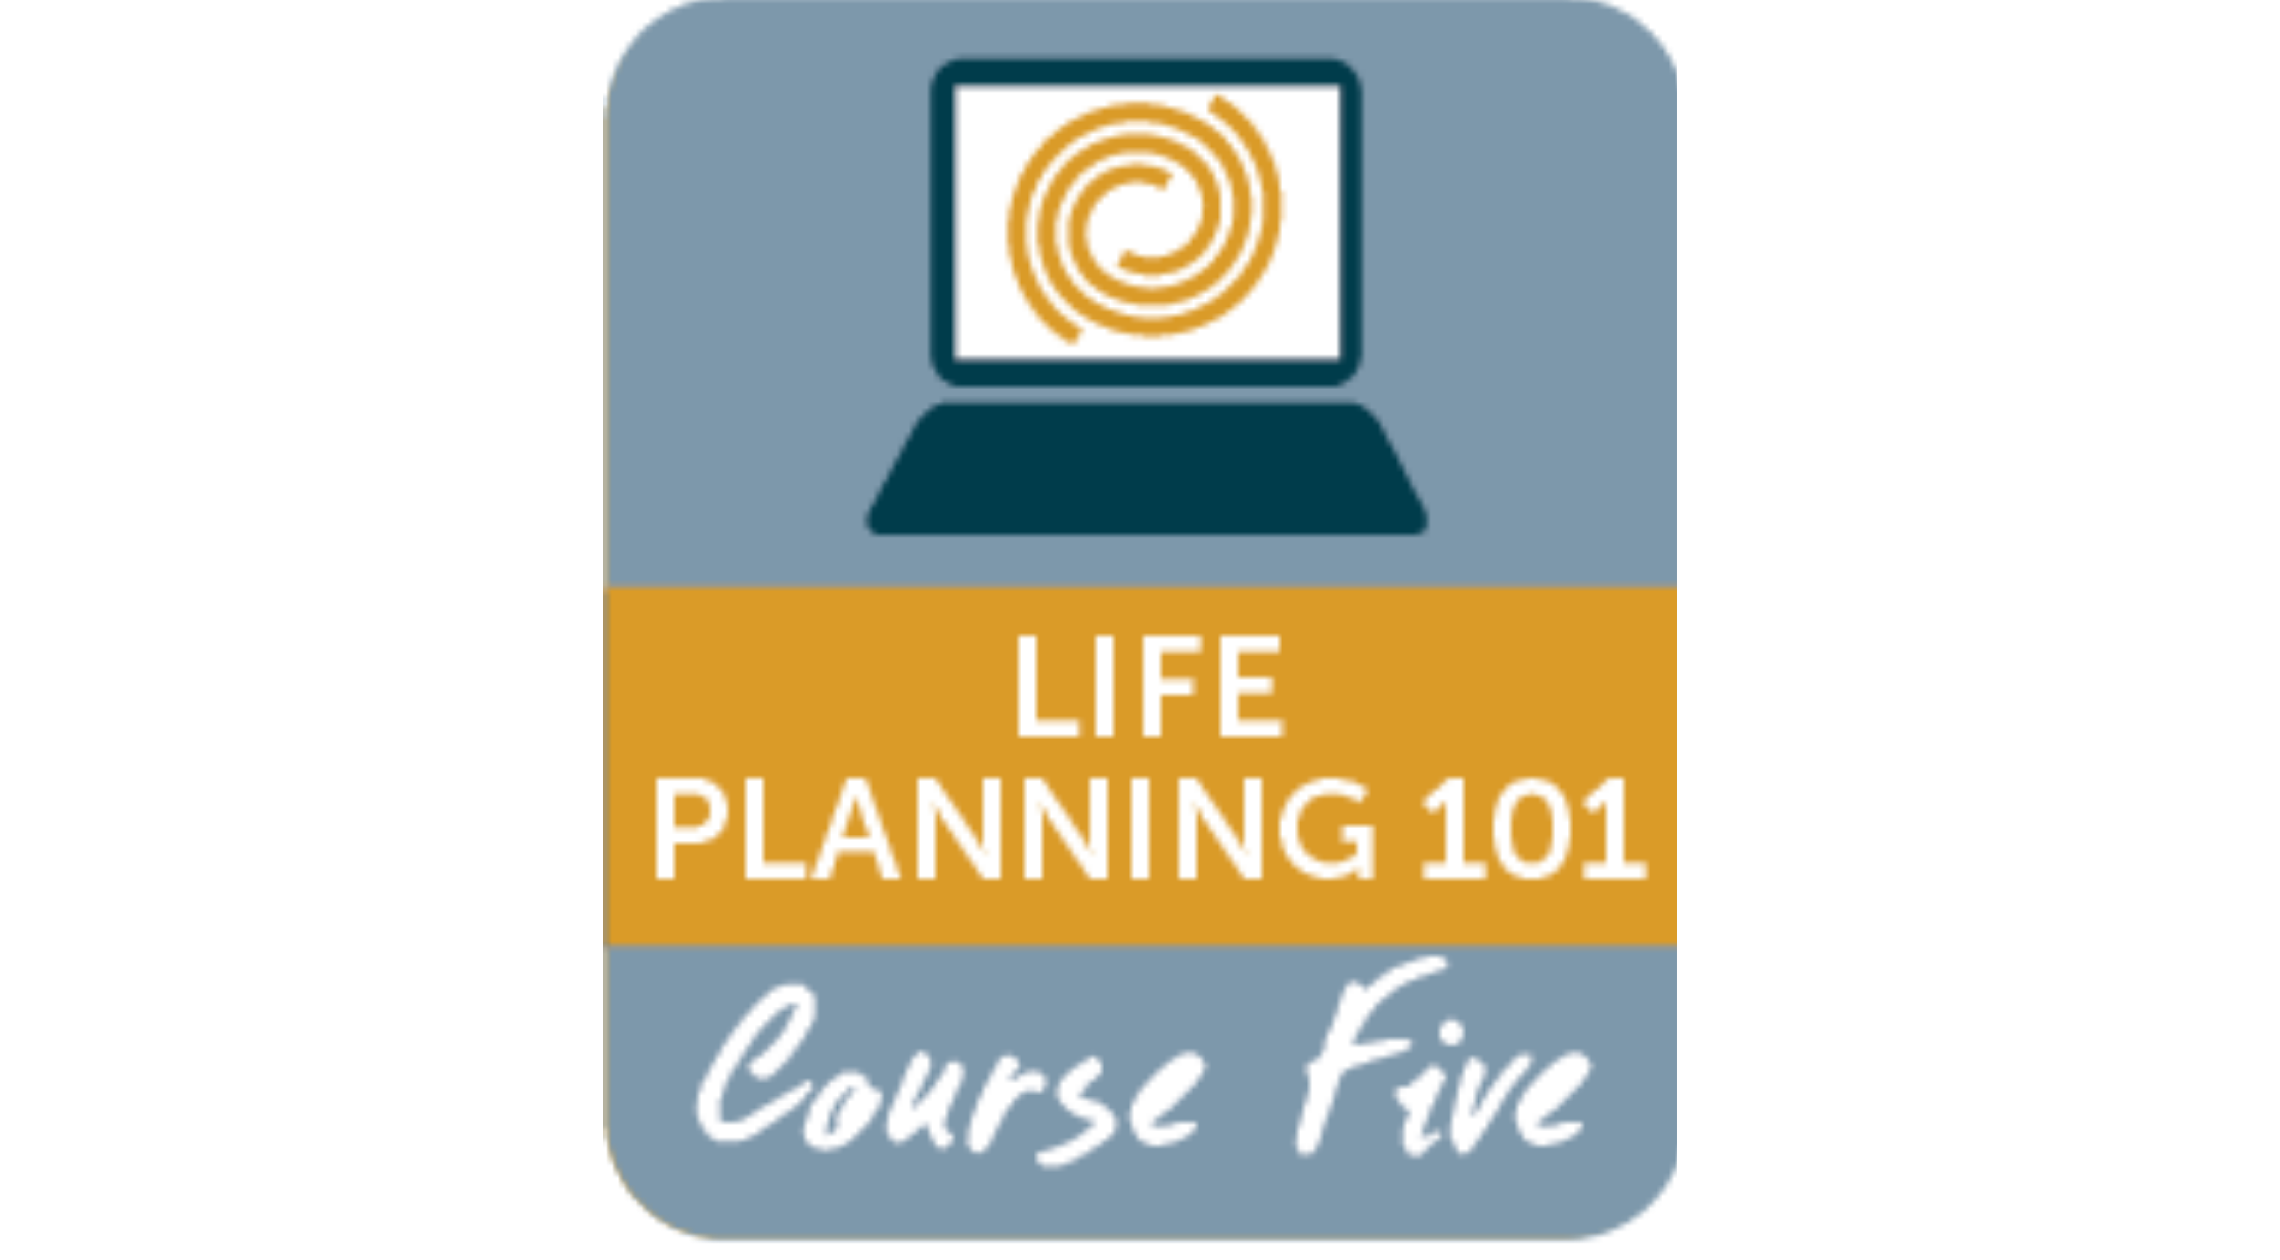 Course 5: Life Planning 101